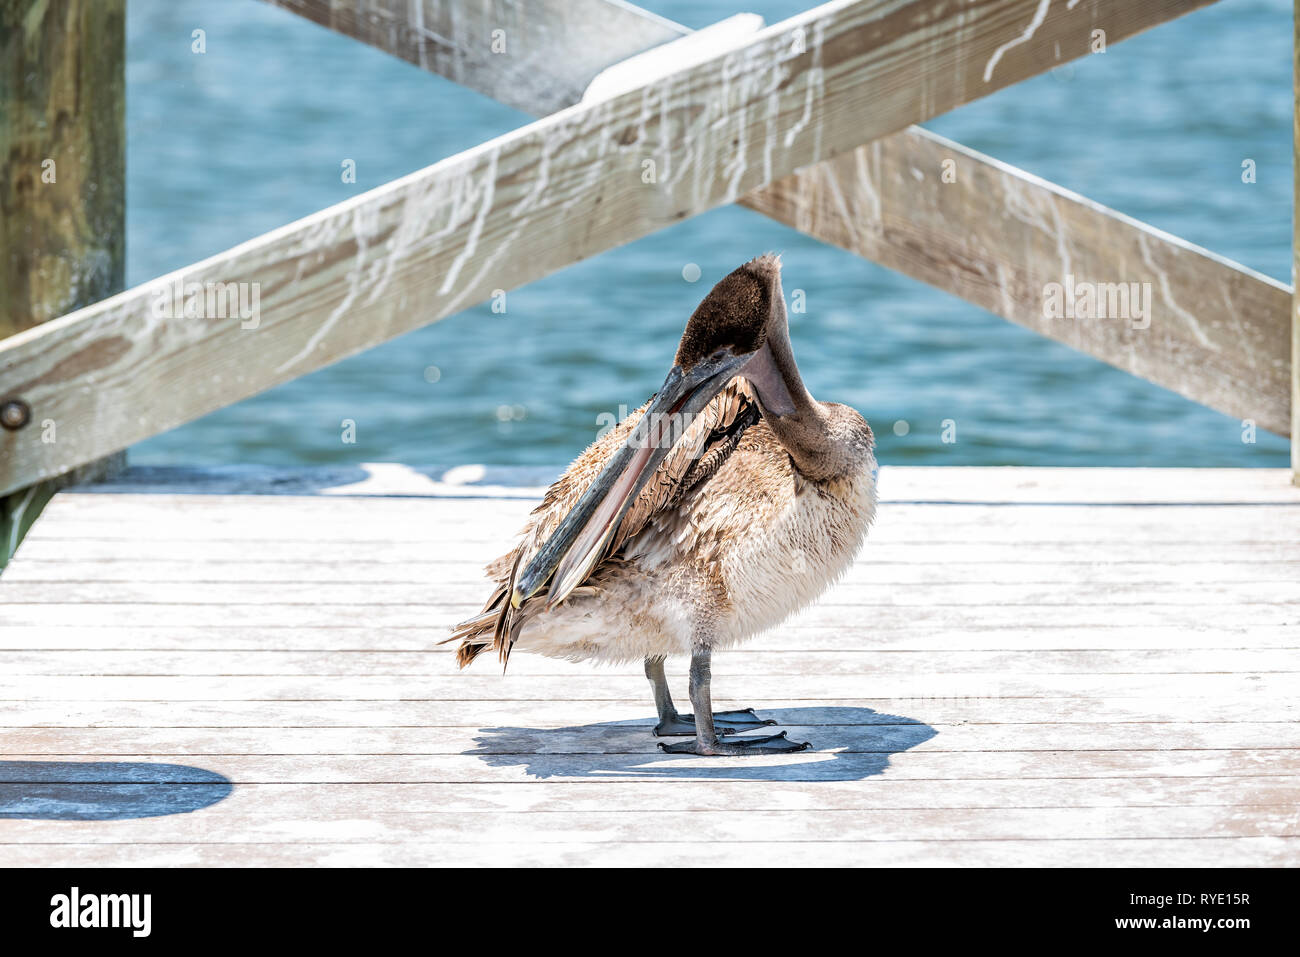 One young Juvenile Eastern Brown Pelican bird closeup in Florida bay near Sanibel island preening feathers with oil standing on wooden pier boardwalk Stock Photo